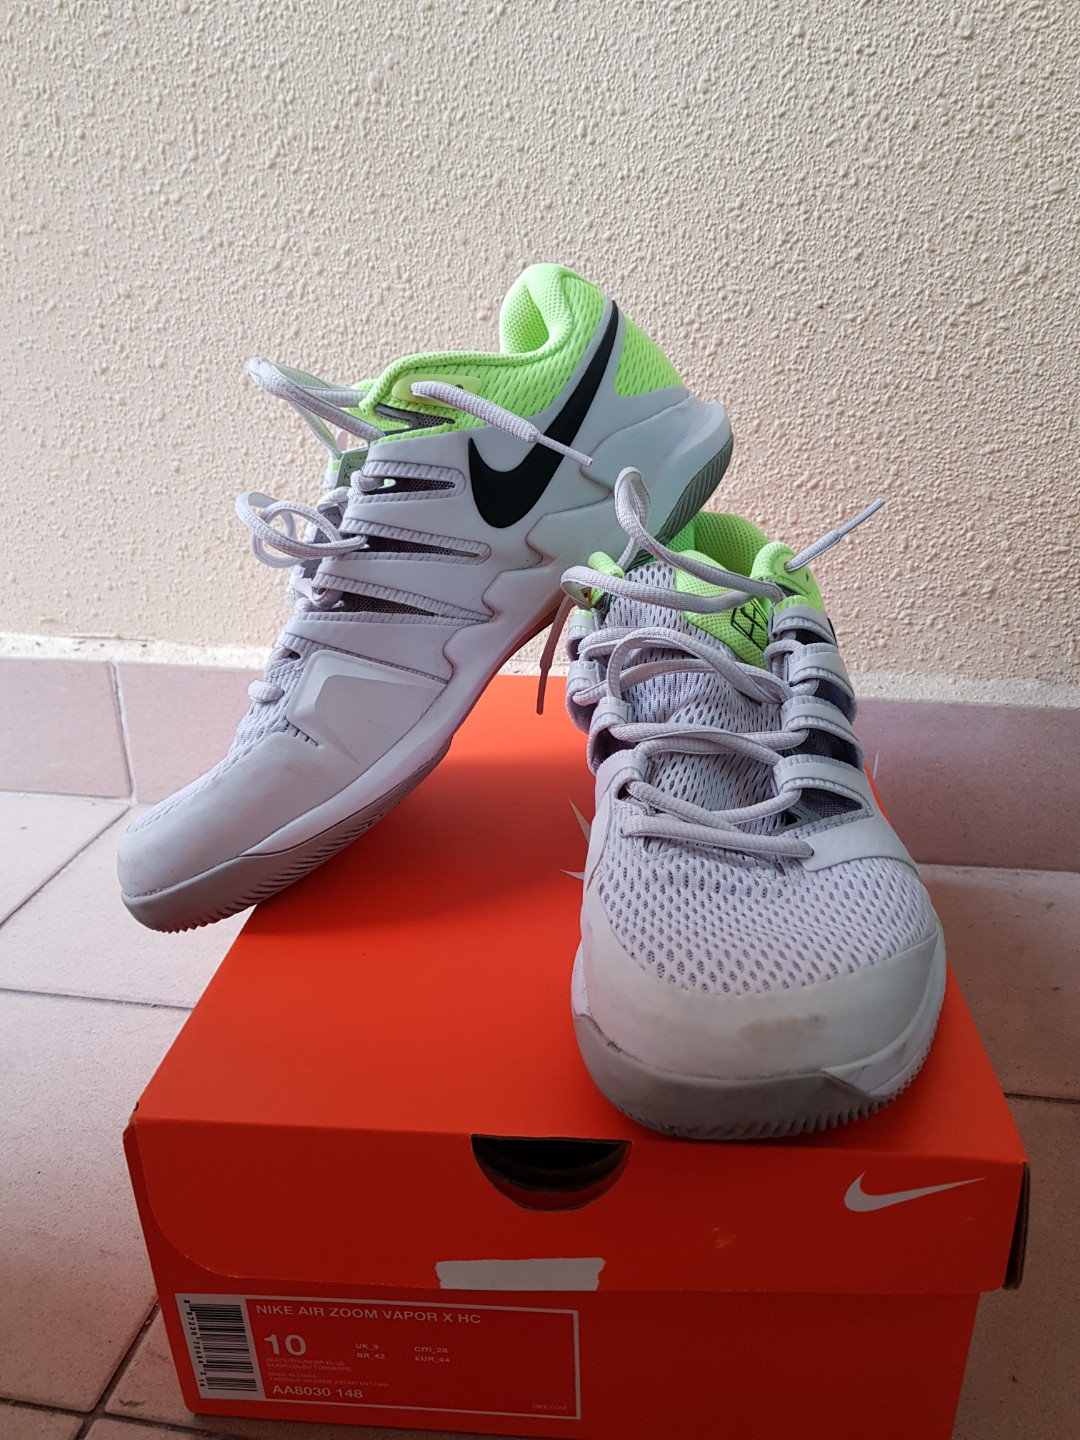 best sneakers 646c7 470aa Home · Sports · Sports Apparel. photo photo photo photo photo